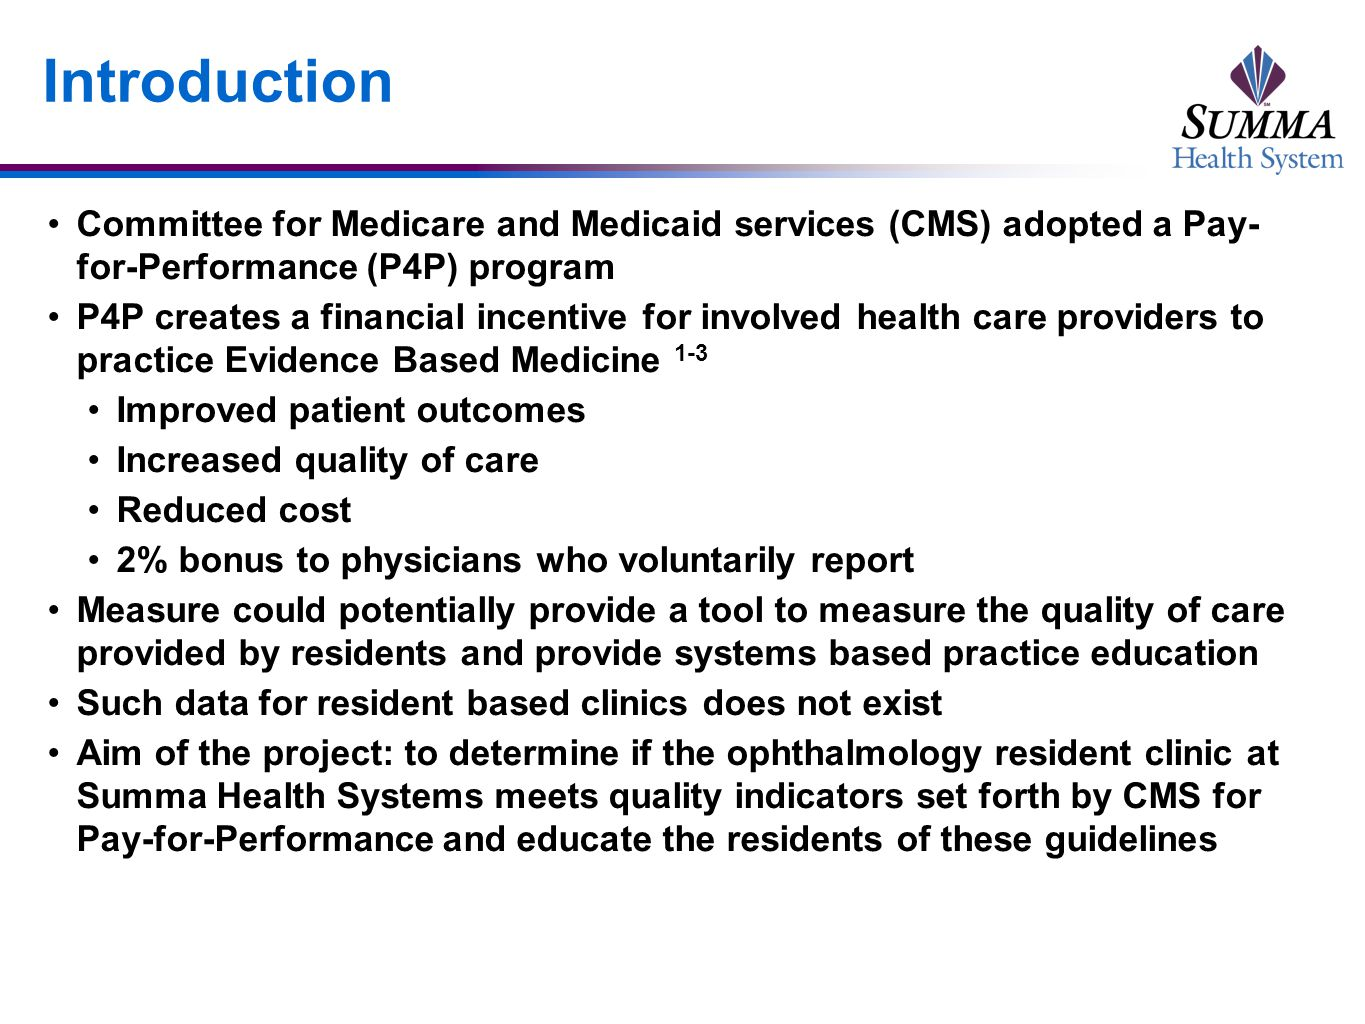 Introduction Committee for Medicare and Medicaid services (CMS) adopted a Pay- for-Performance (P4P) program P4P creates a financial incentive for involved health care providers to practice Evidence Based Medicine 1-3 Improved patient outcomes Increased quality of care Reduced cost 2% bonus to physicians who voluntarily report Measure could potentially provide a tool to measure the quality of care provided by residents and provide systems based practice education Such data for resident based clinics does not exist Aim of the project: to determine if the ophthalmology resident clinic at Summa Health Systems meets quality indicators set forth by CMS for Pay-for-Performance and educate the residents of these guidelines